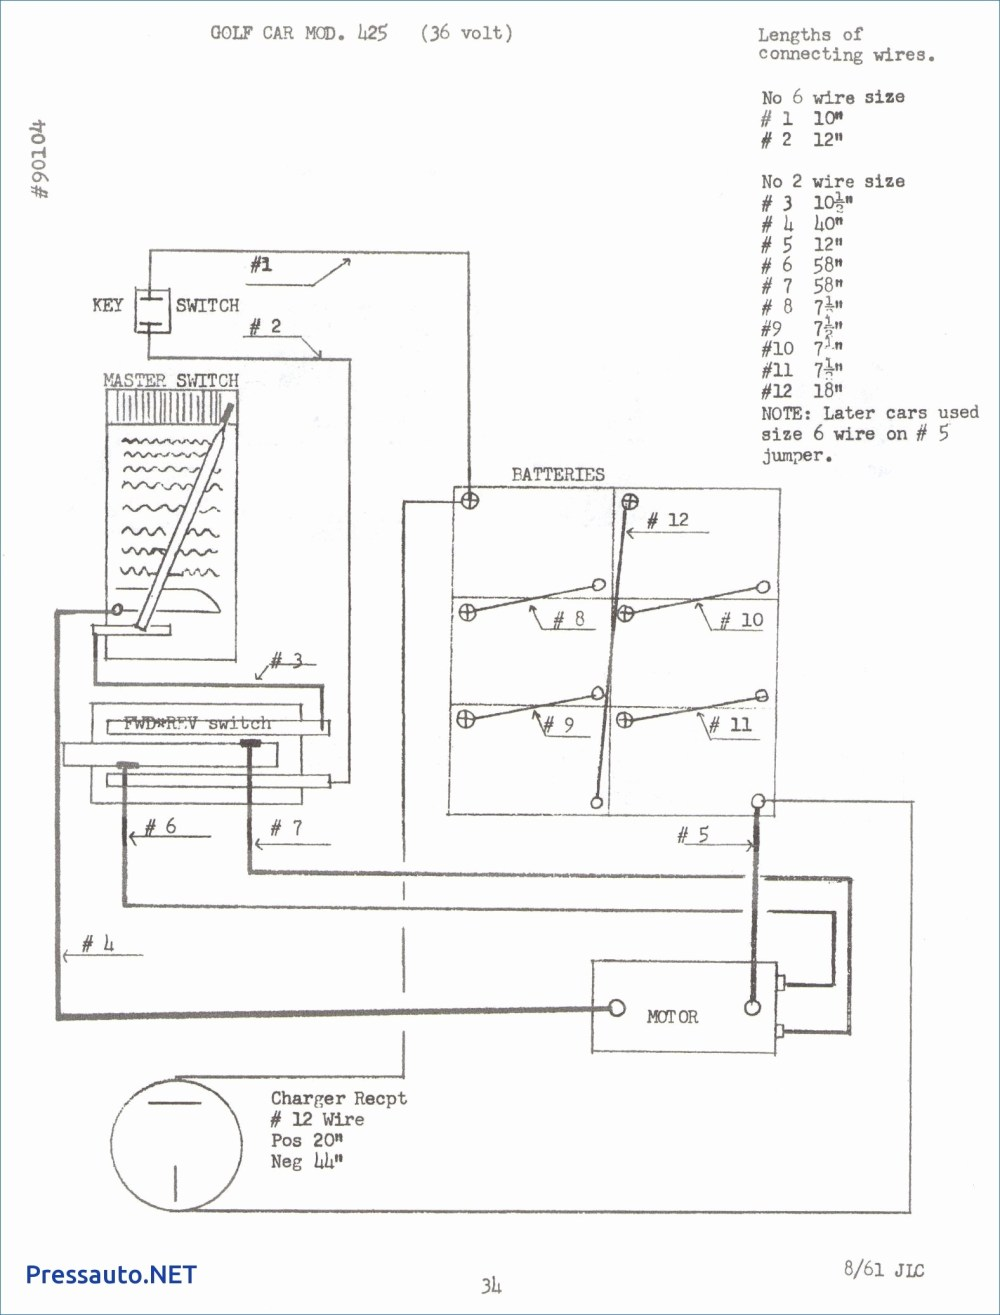 medium resolution of taylor dunn golf cart wiring diagram diagram data schema taylor dunn r380 wiring diagram 36